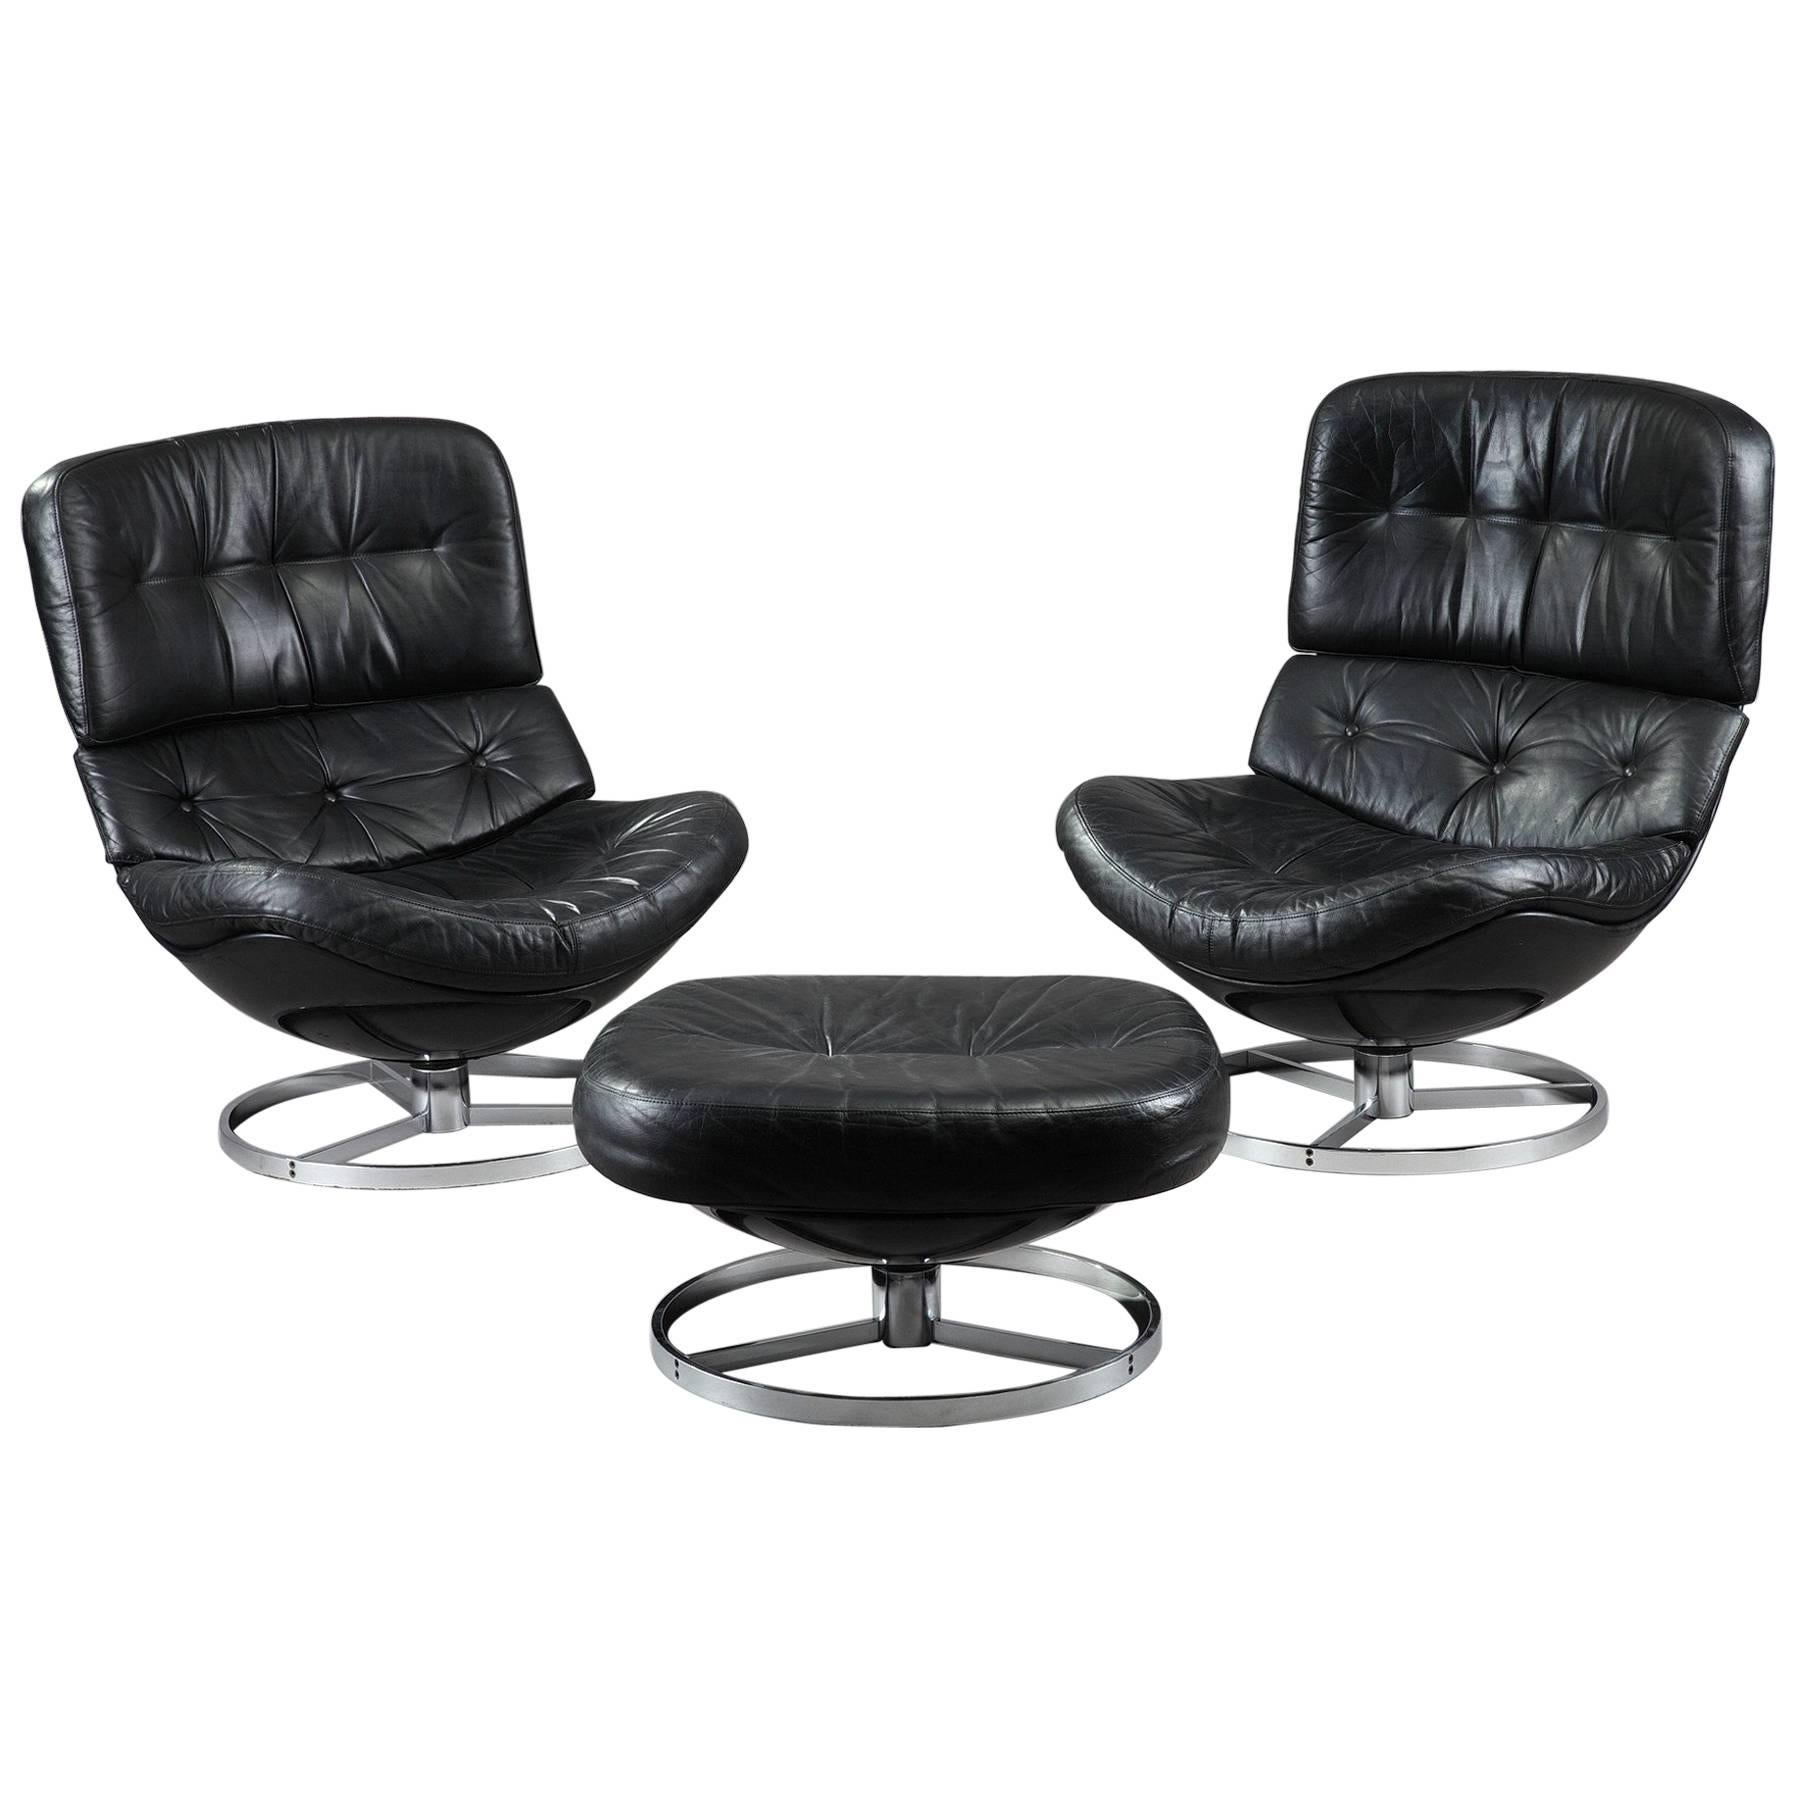 Pair Of Swivel Armchairs And Ottoman In Fiberglass And Leather